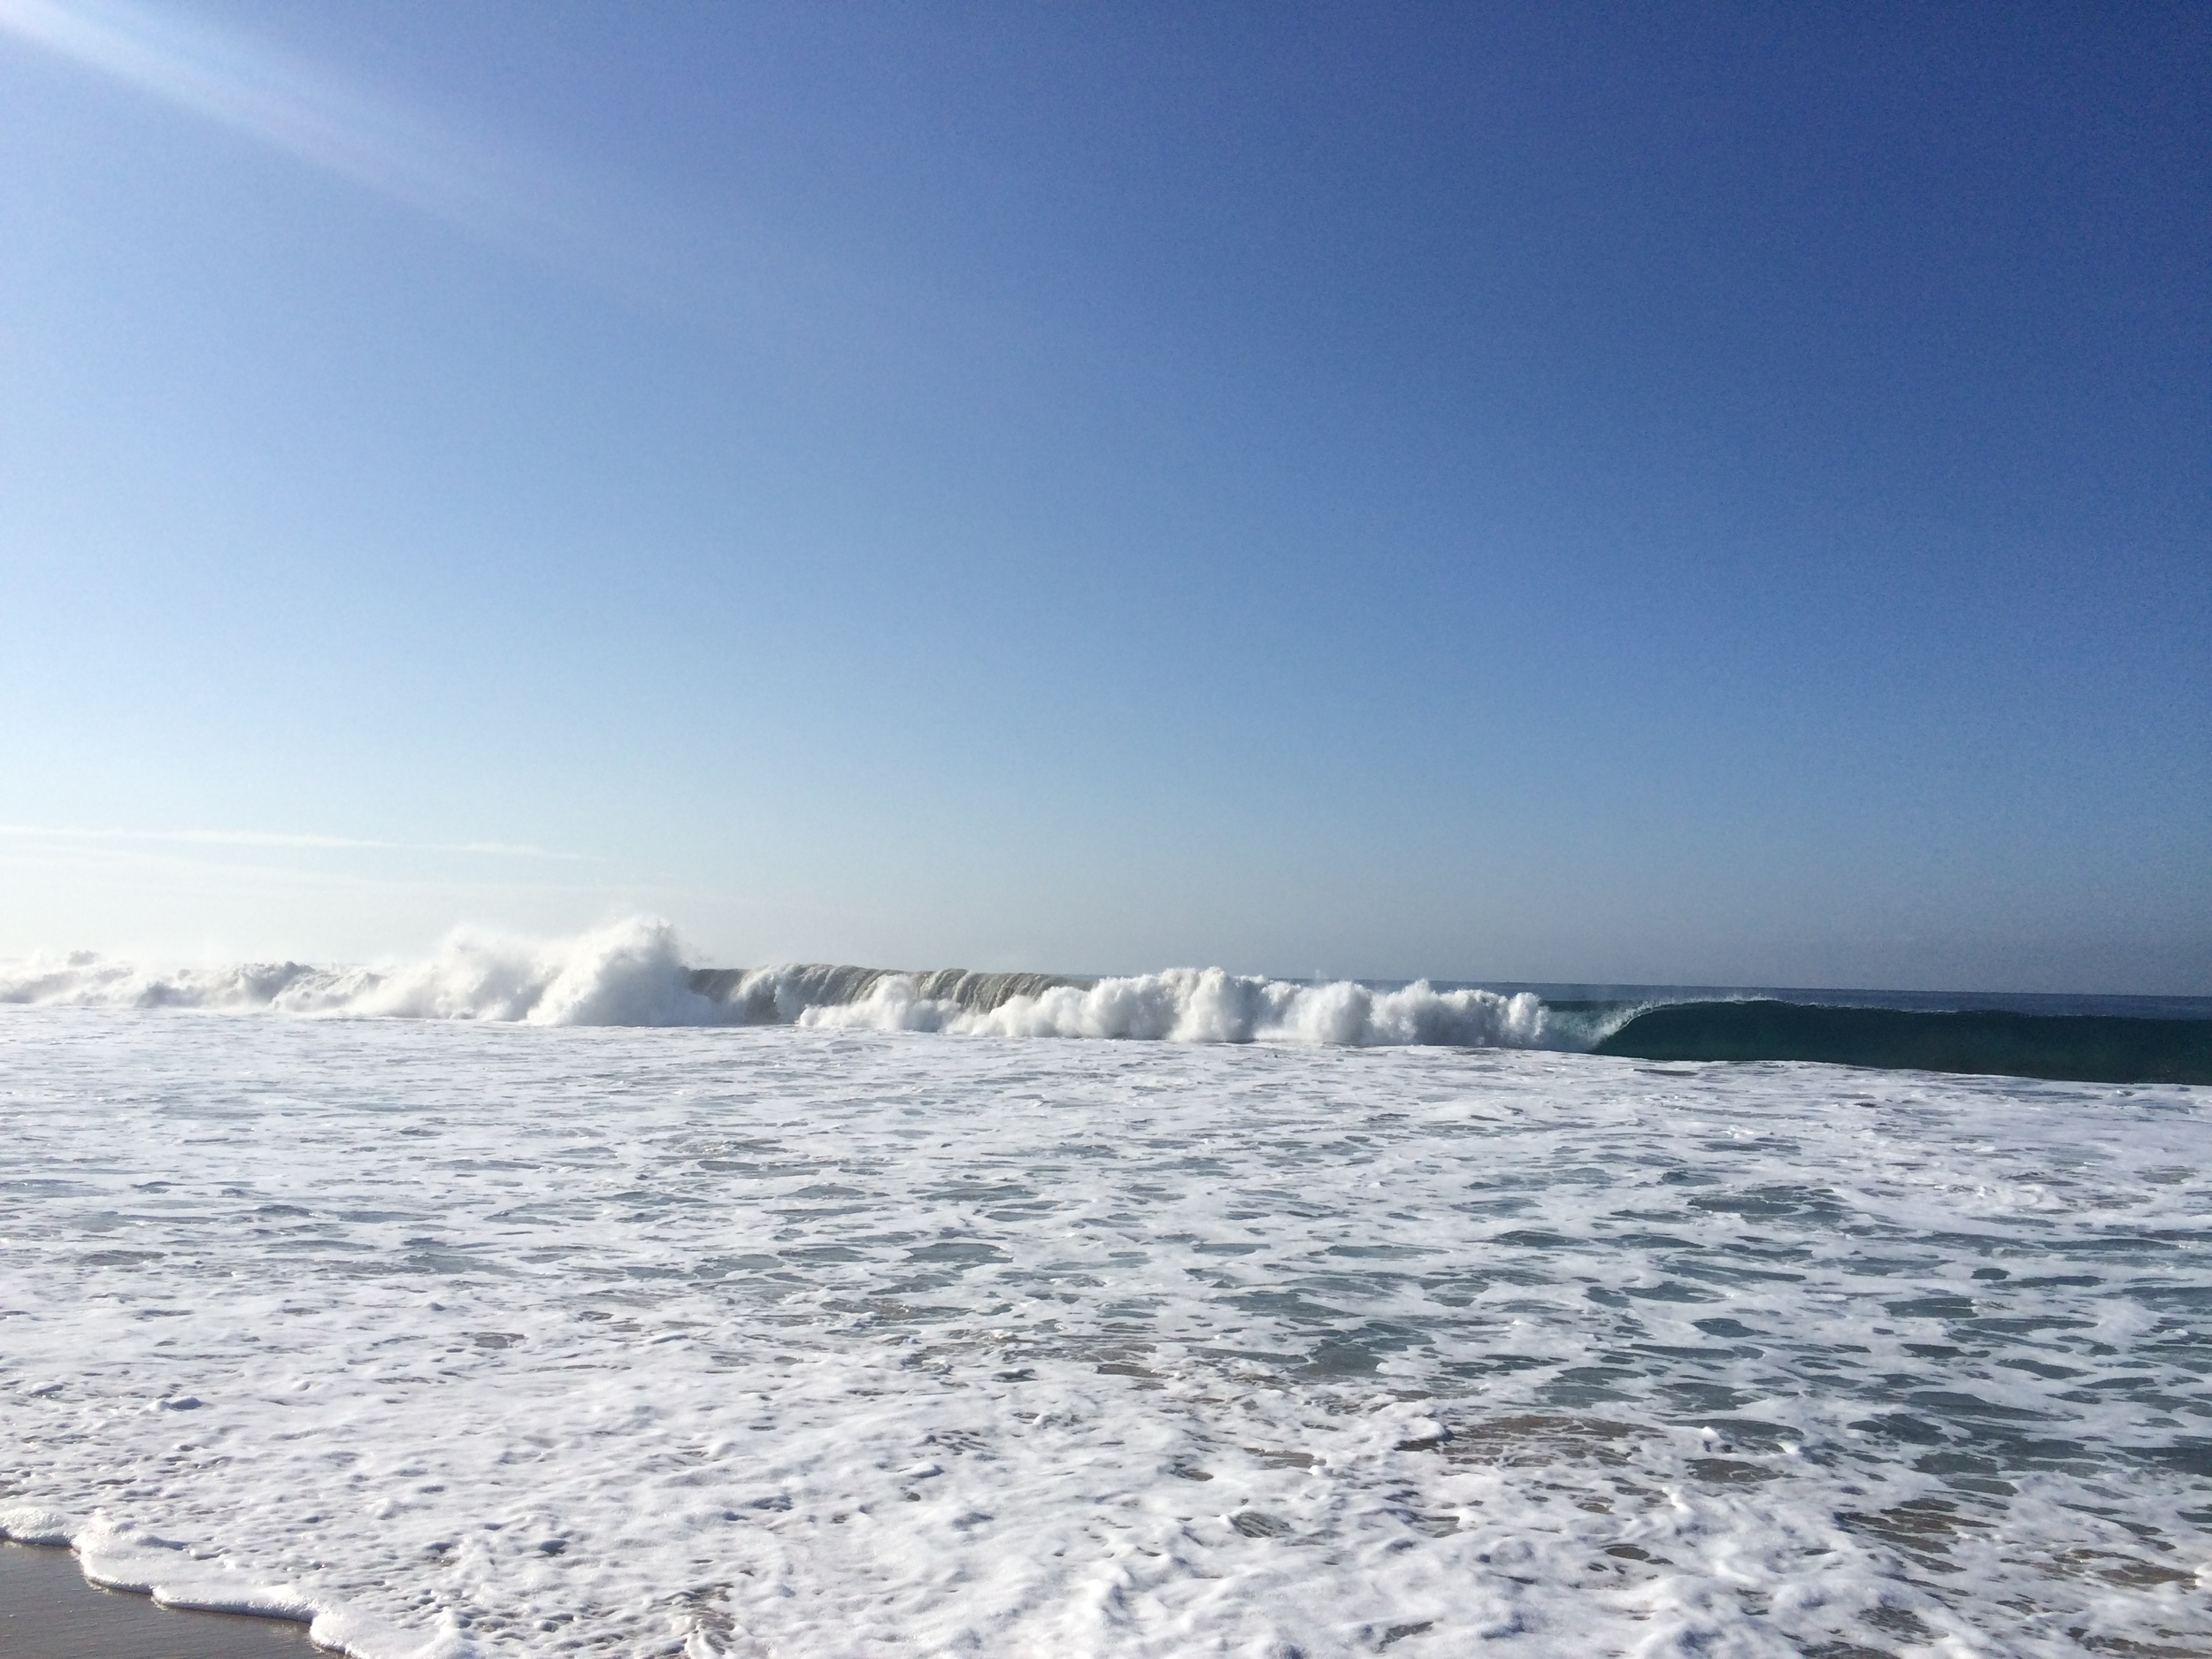 Last weekend I experienced the waves in the morning, and quickly found a weekend morning favorite spot.